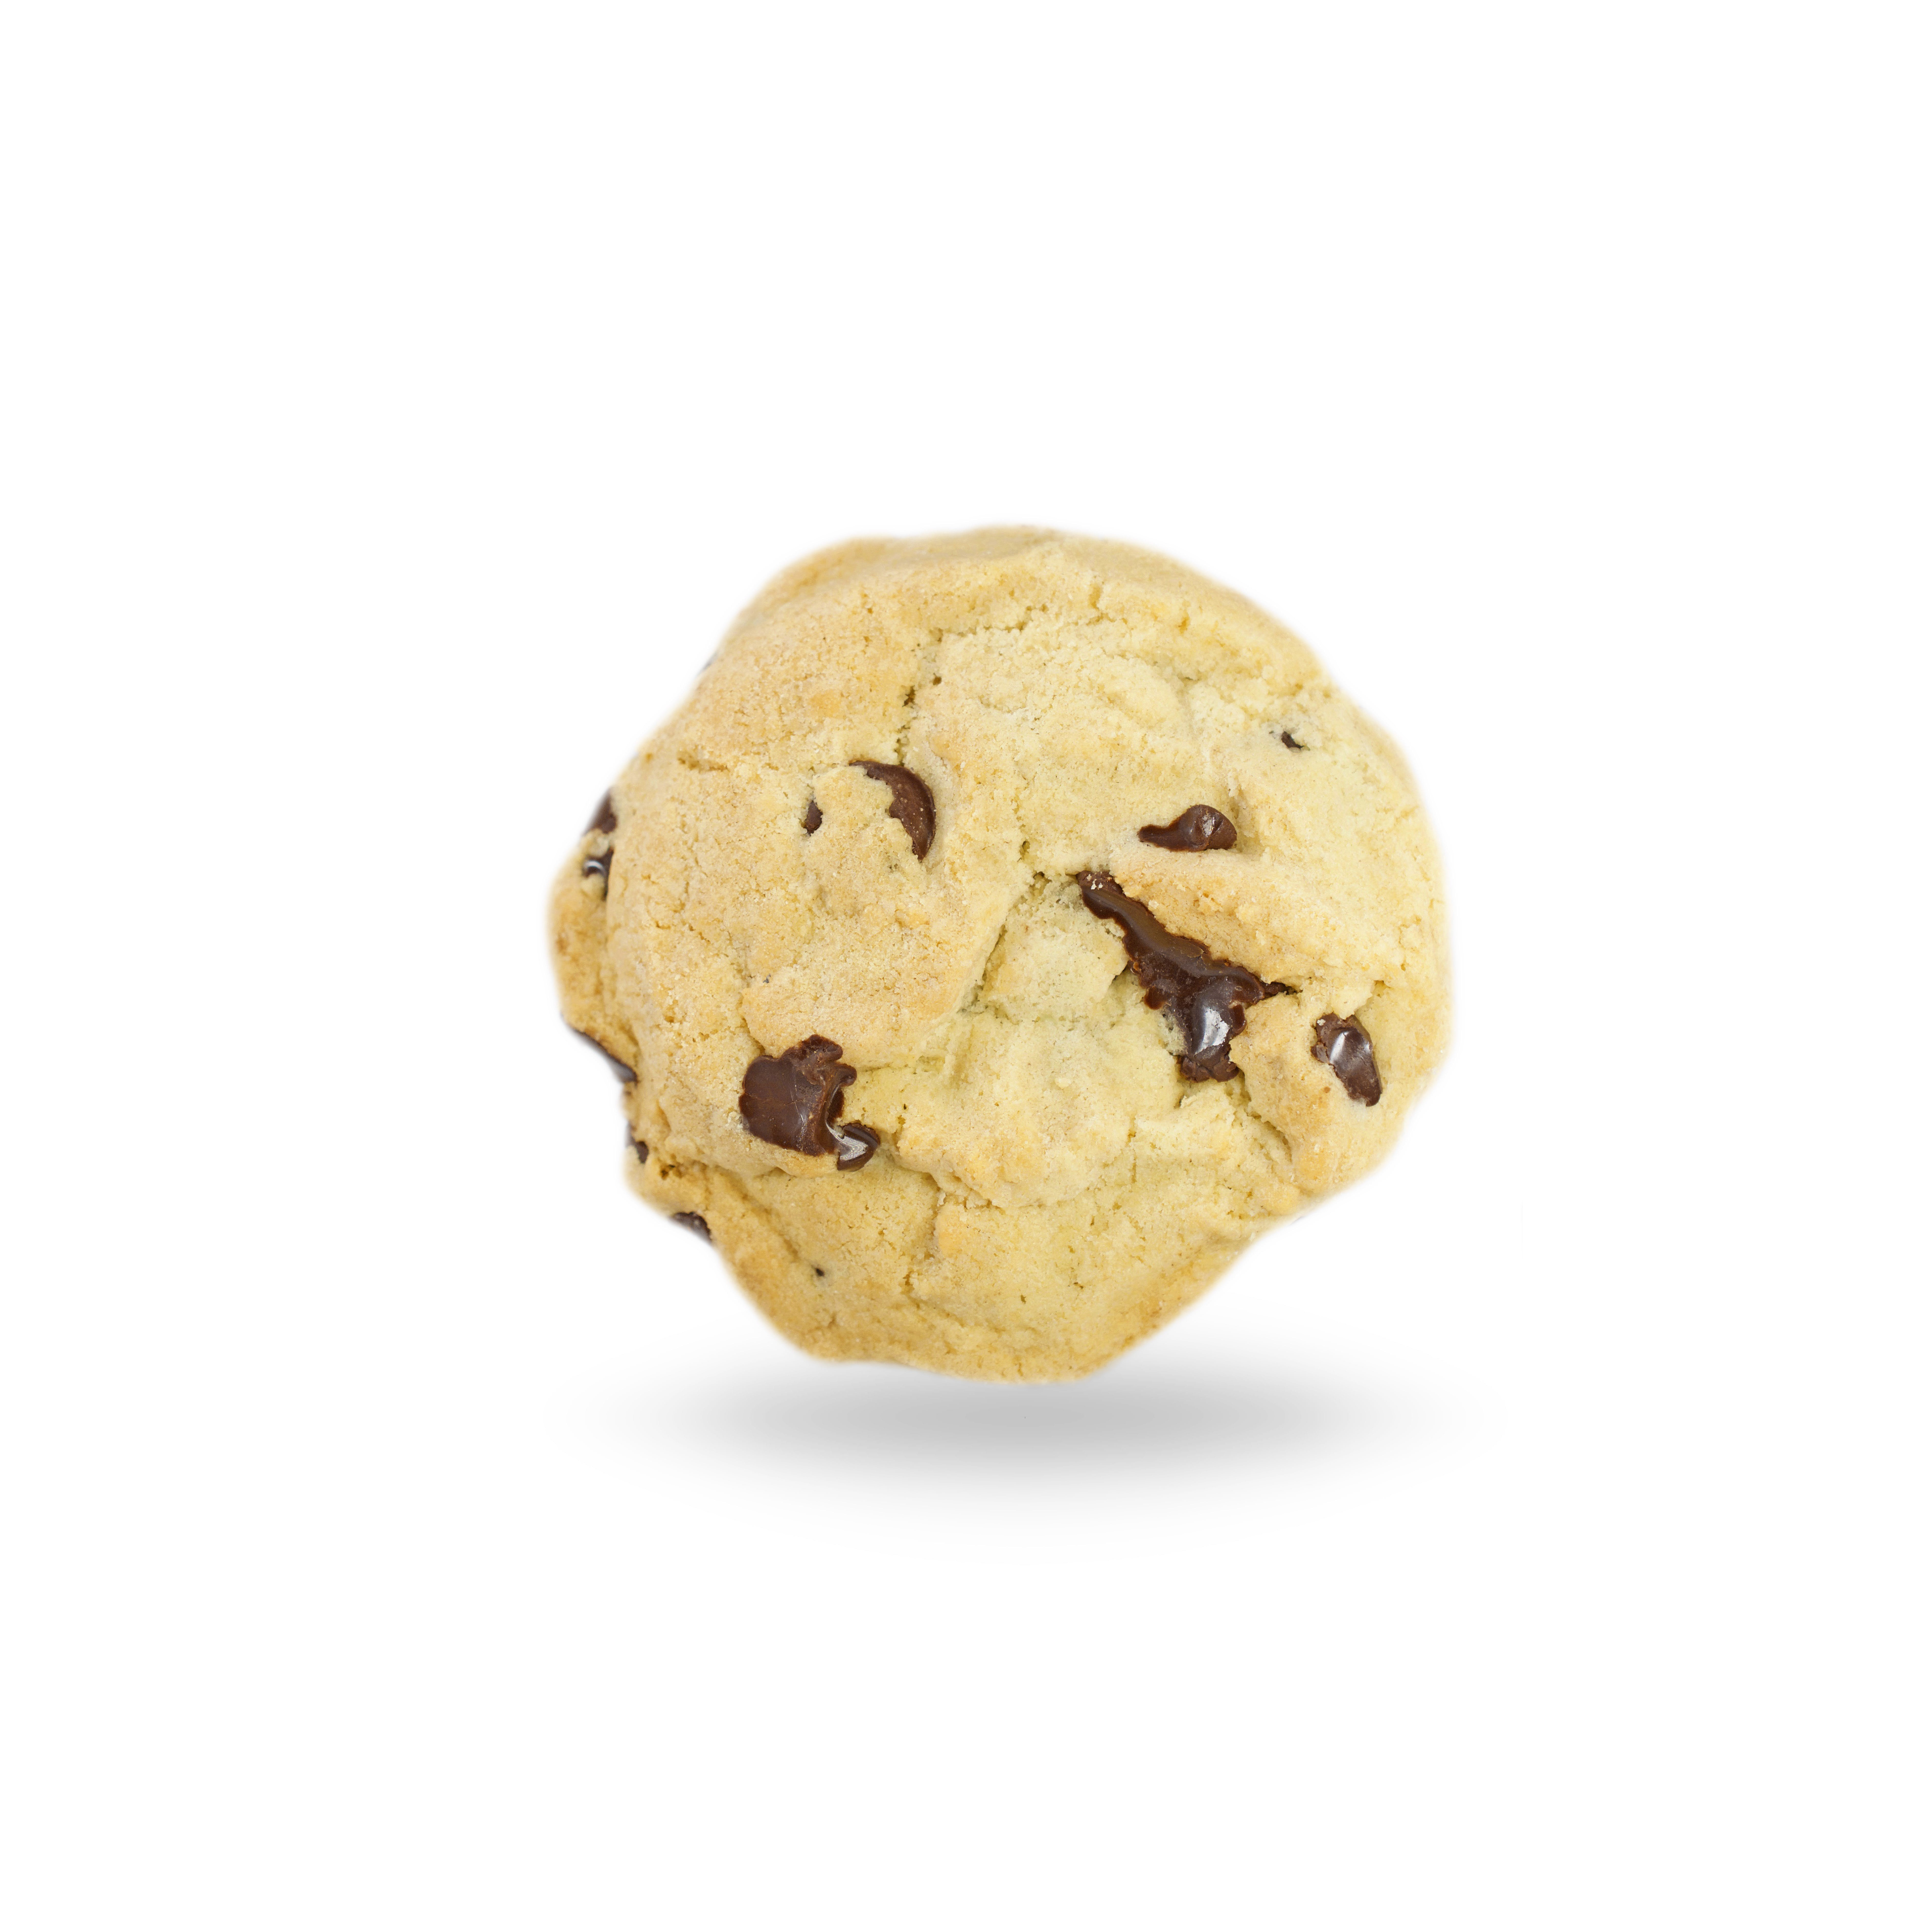 edible-chocolate-chip-cookie-4-pack